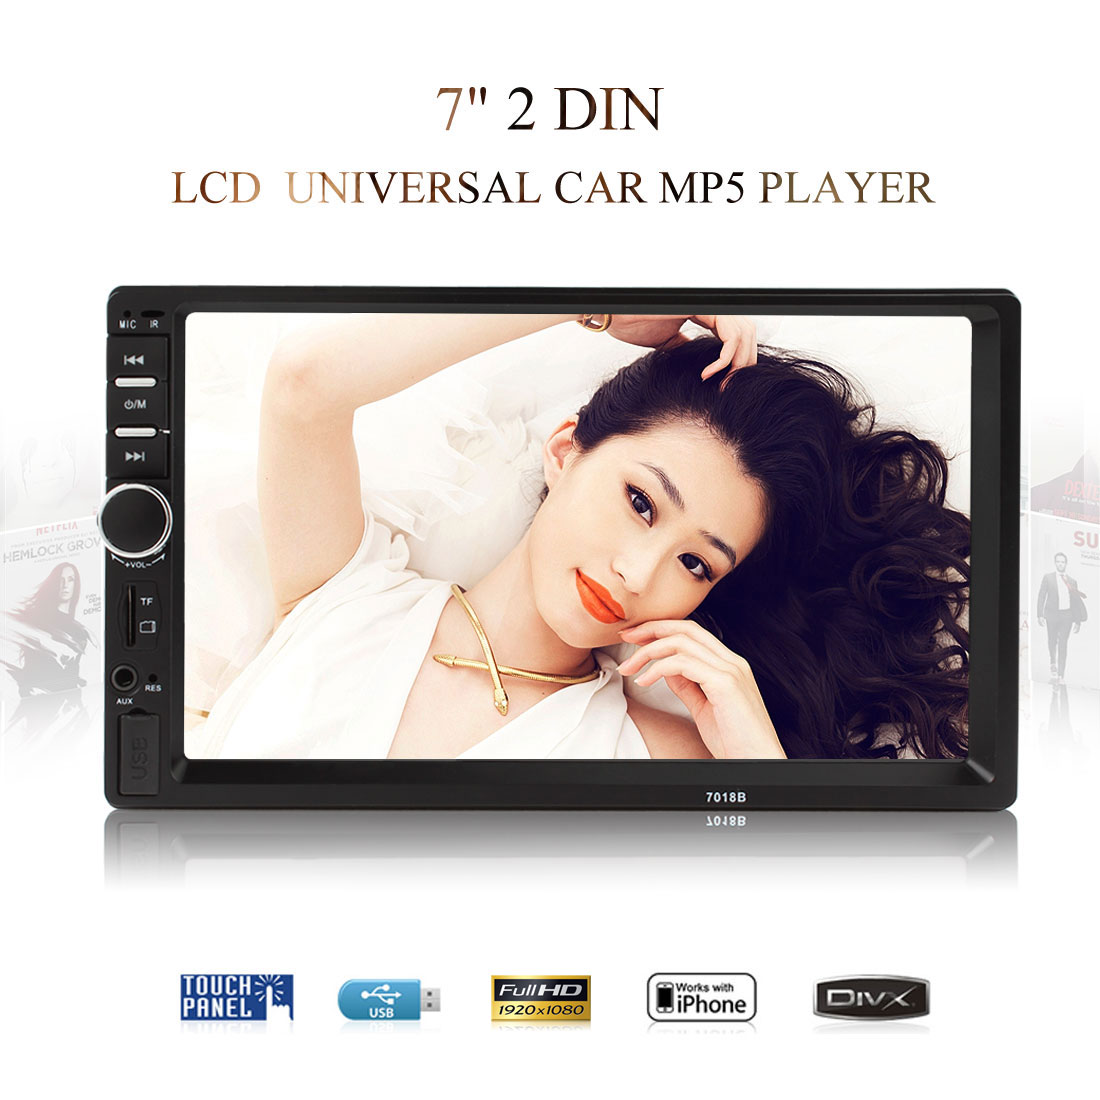 7018B 7 Inch LCD HD Double DIN Car In-Dash Touch Screen Bluetooth Car Stereo FM MP3 MP5 Radio Player touch screen bluetooth car stereo fm mp3 mp5 radio player of 7 inch lcd hd double din in dash rear view camera